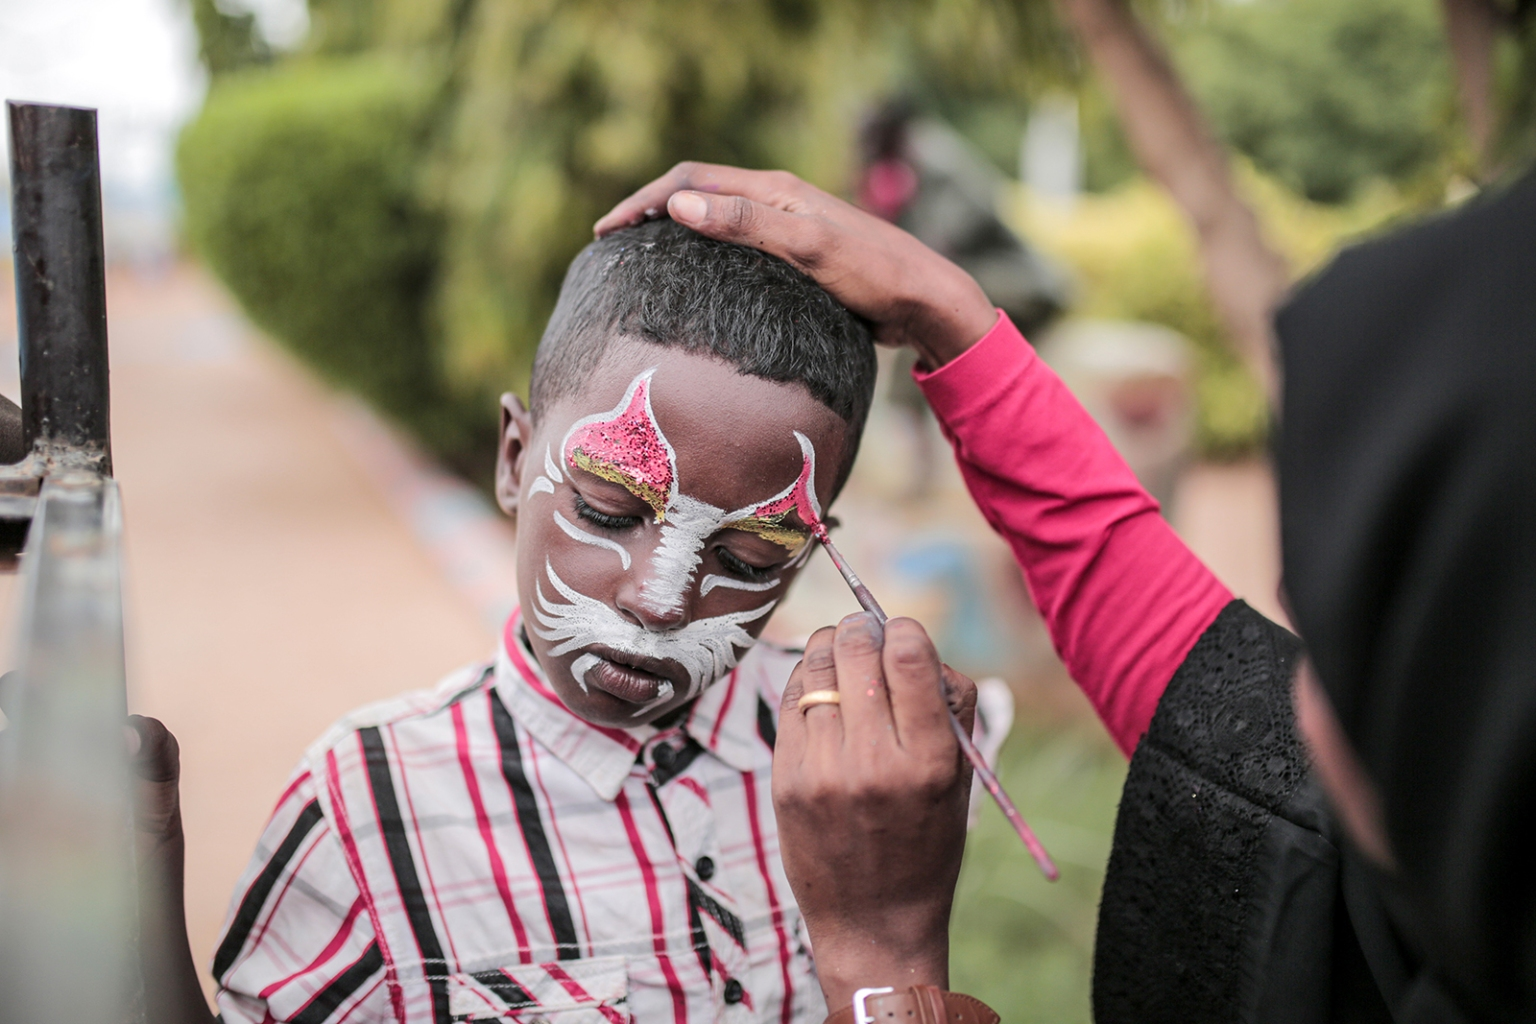 A Sudanese child has his face painted at an amusement park in Omdurman on Aug. 13. JEAN MARC MOJON/AFP/Getty Images